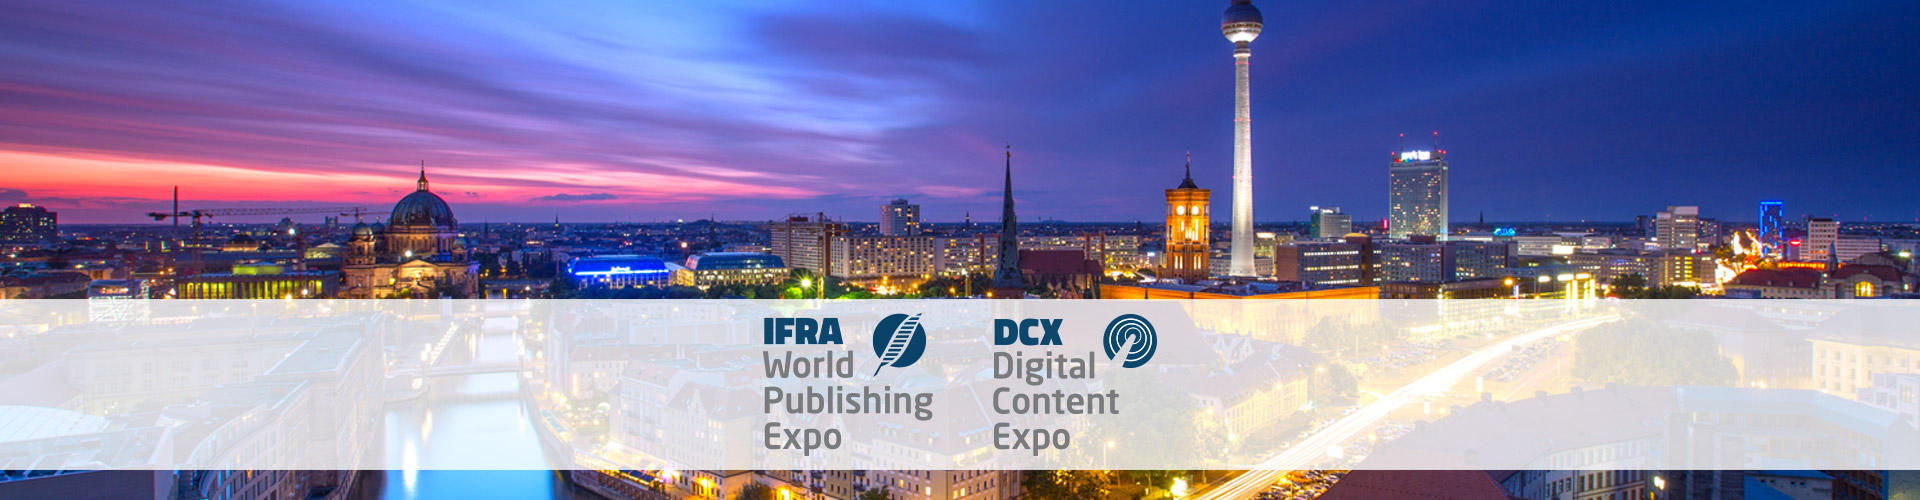 Header image of PageSuite are Exhibiting at the WAN IFRA World Publishing Expo & Digital Content Expo!